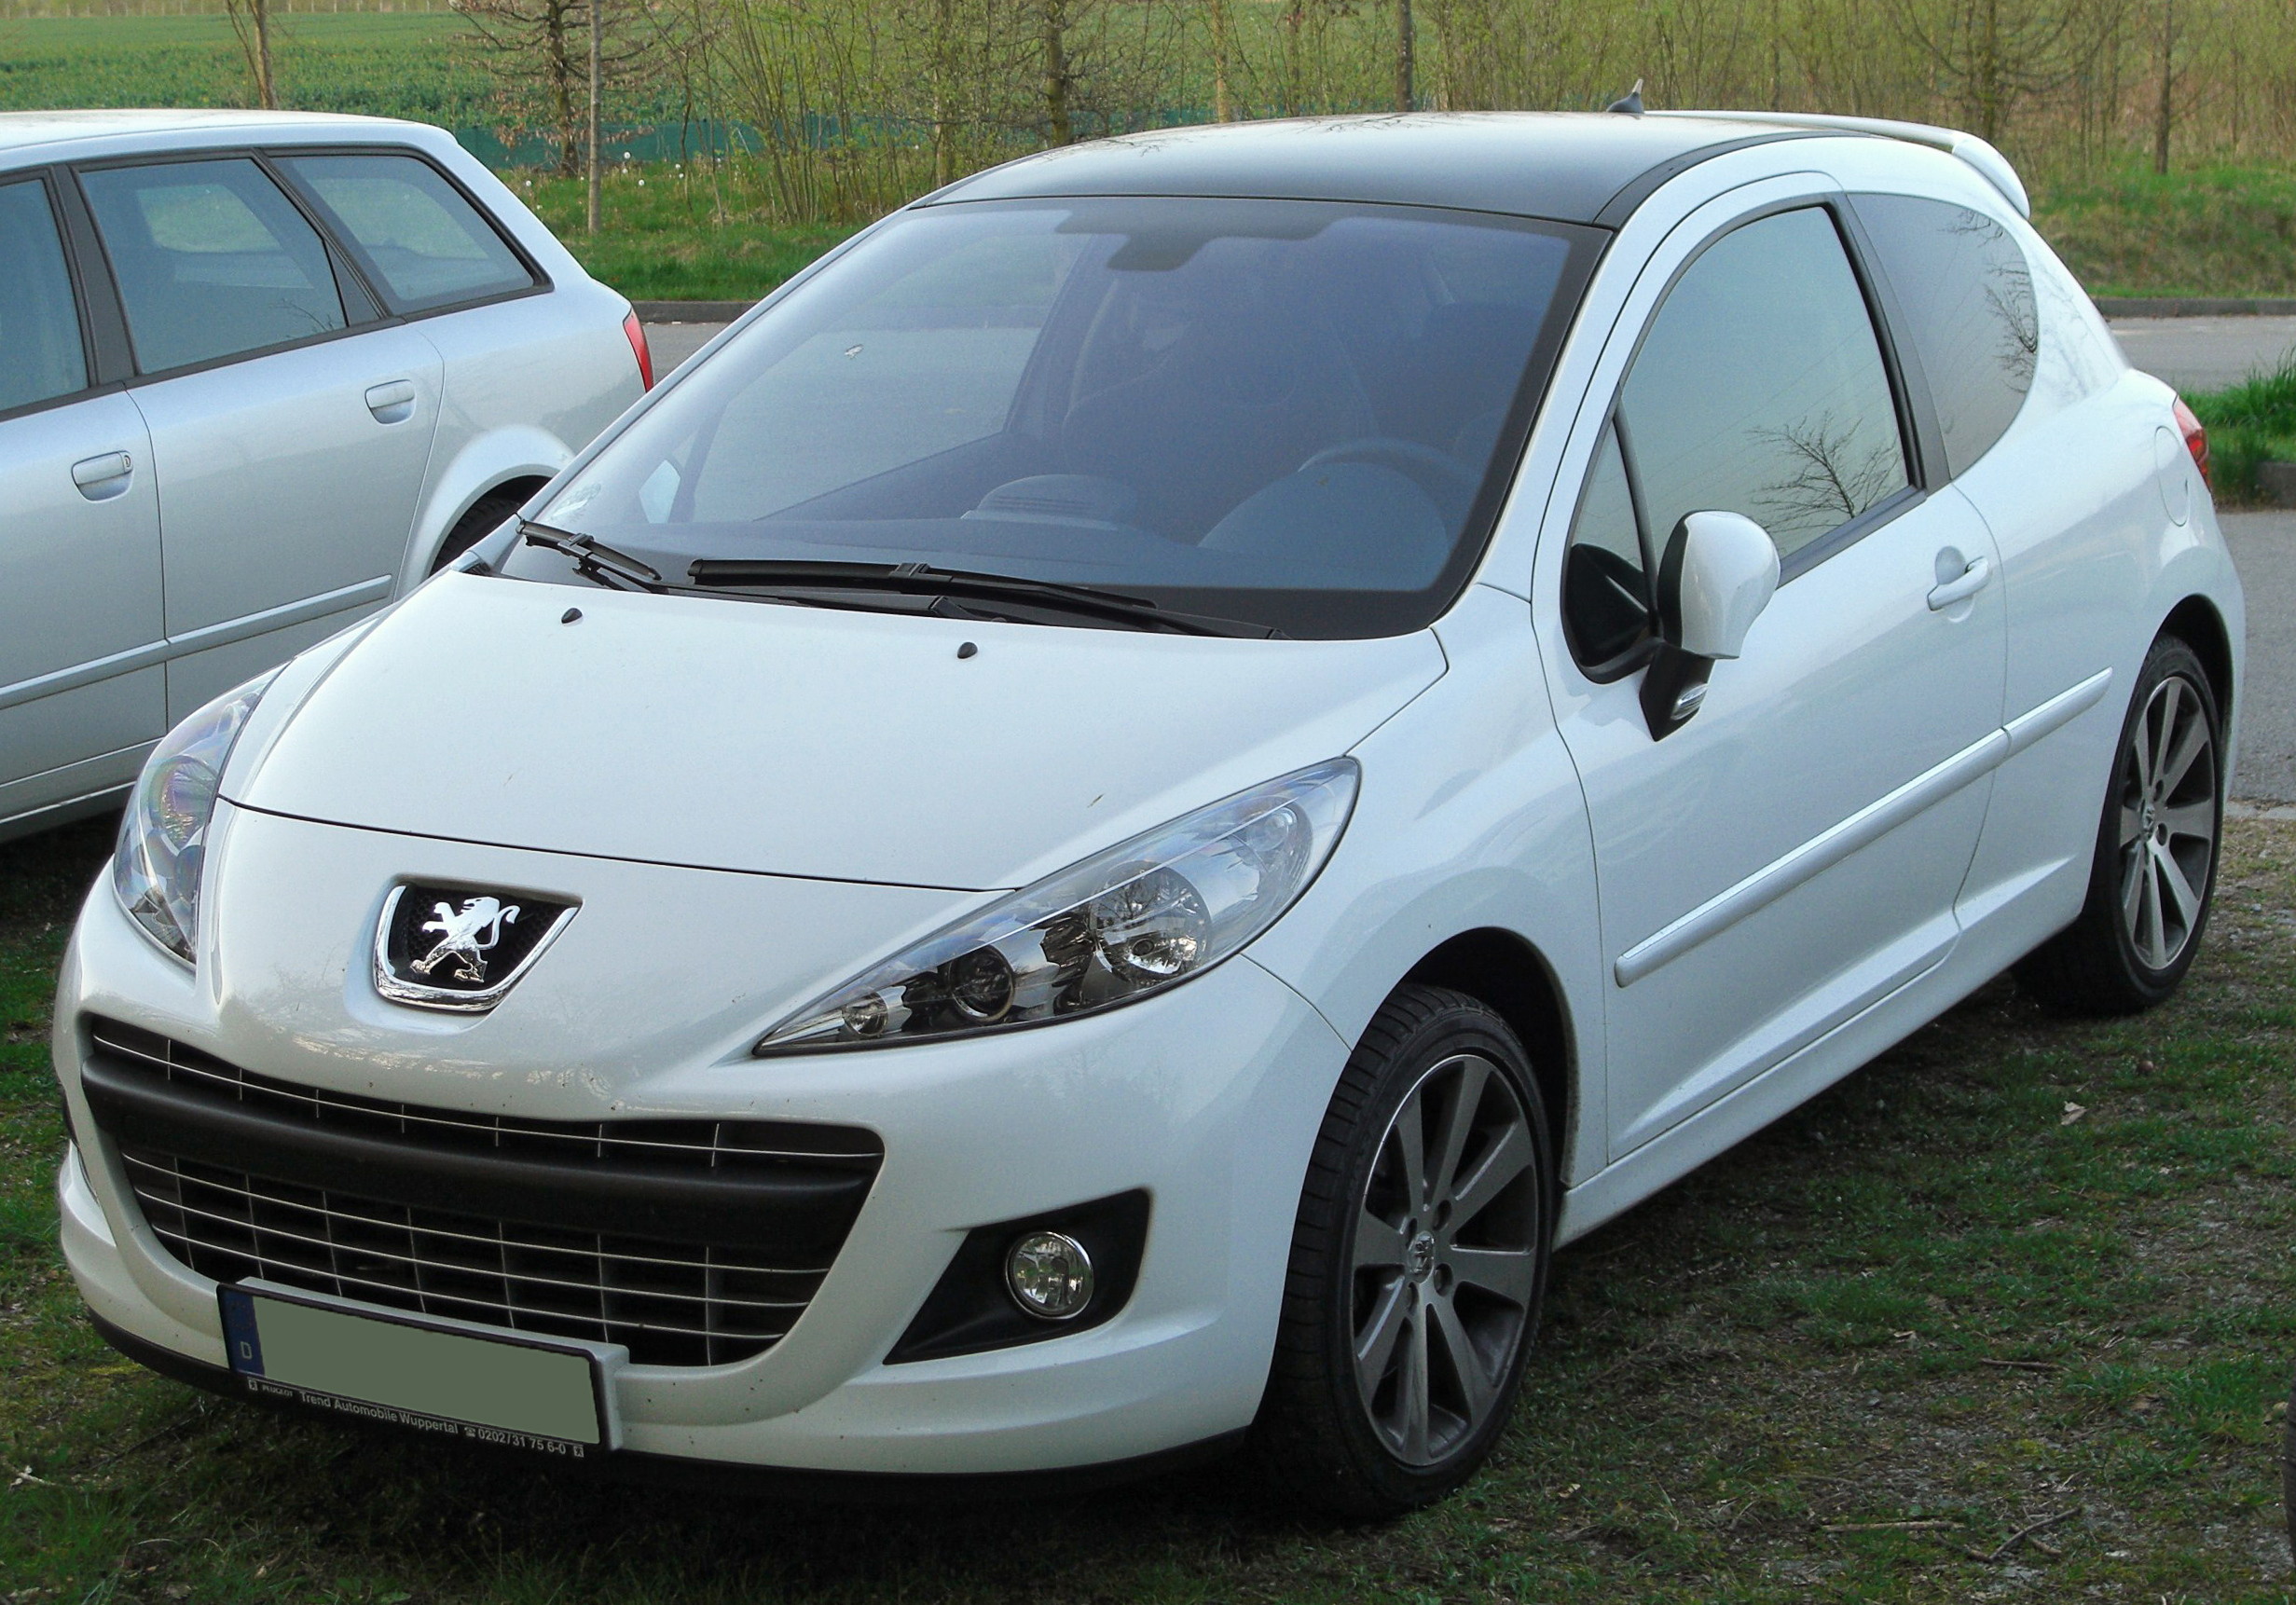 file peugeot 207 rc facelift front wikipedia. Black Bedroom Furniture Sets. Home Design Ideas